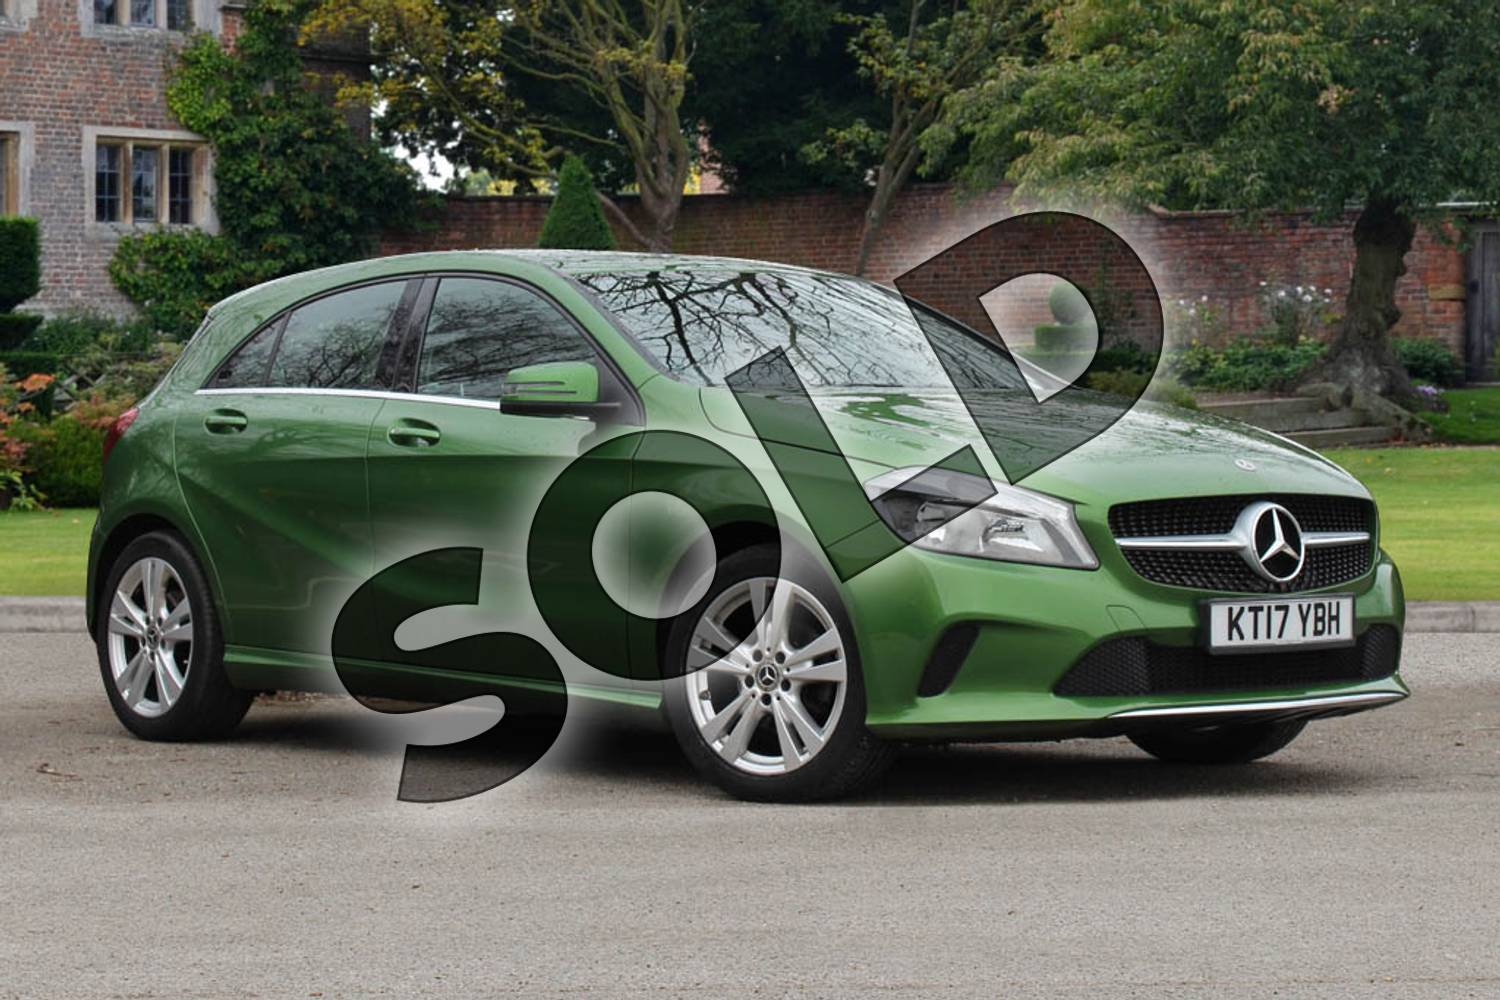 2017 Mercedes-Benz A Class Diesel Hatchback A180d Sport 5dr Auto in Elbaite green at Mercedes-Benz of Lincoln